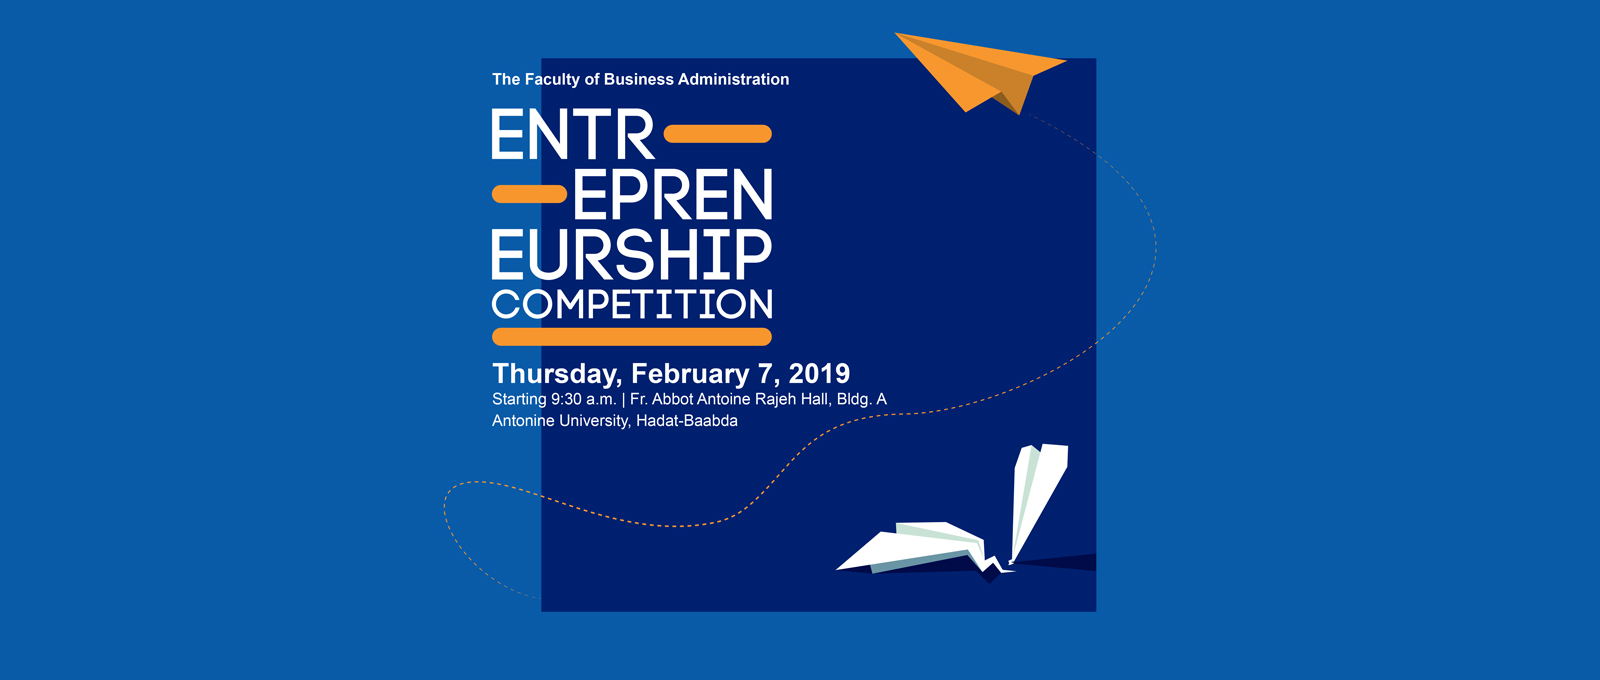 ENTREPRENEURSHIP COMPETITION